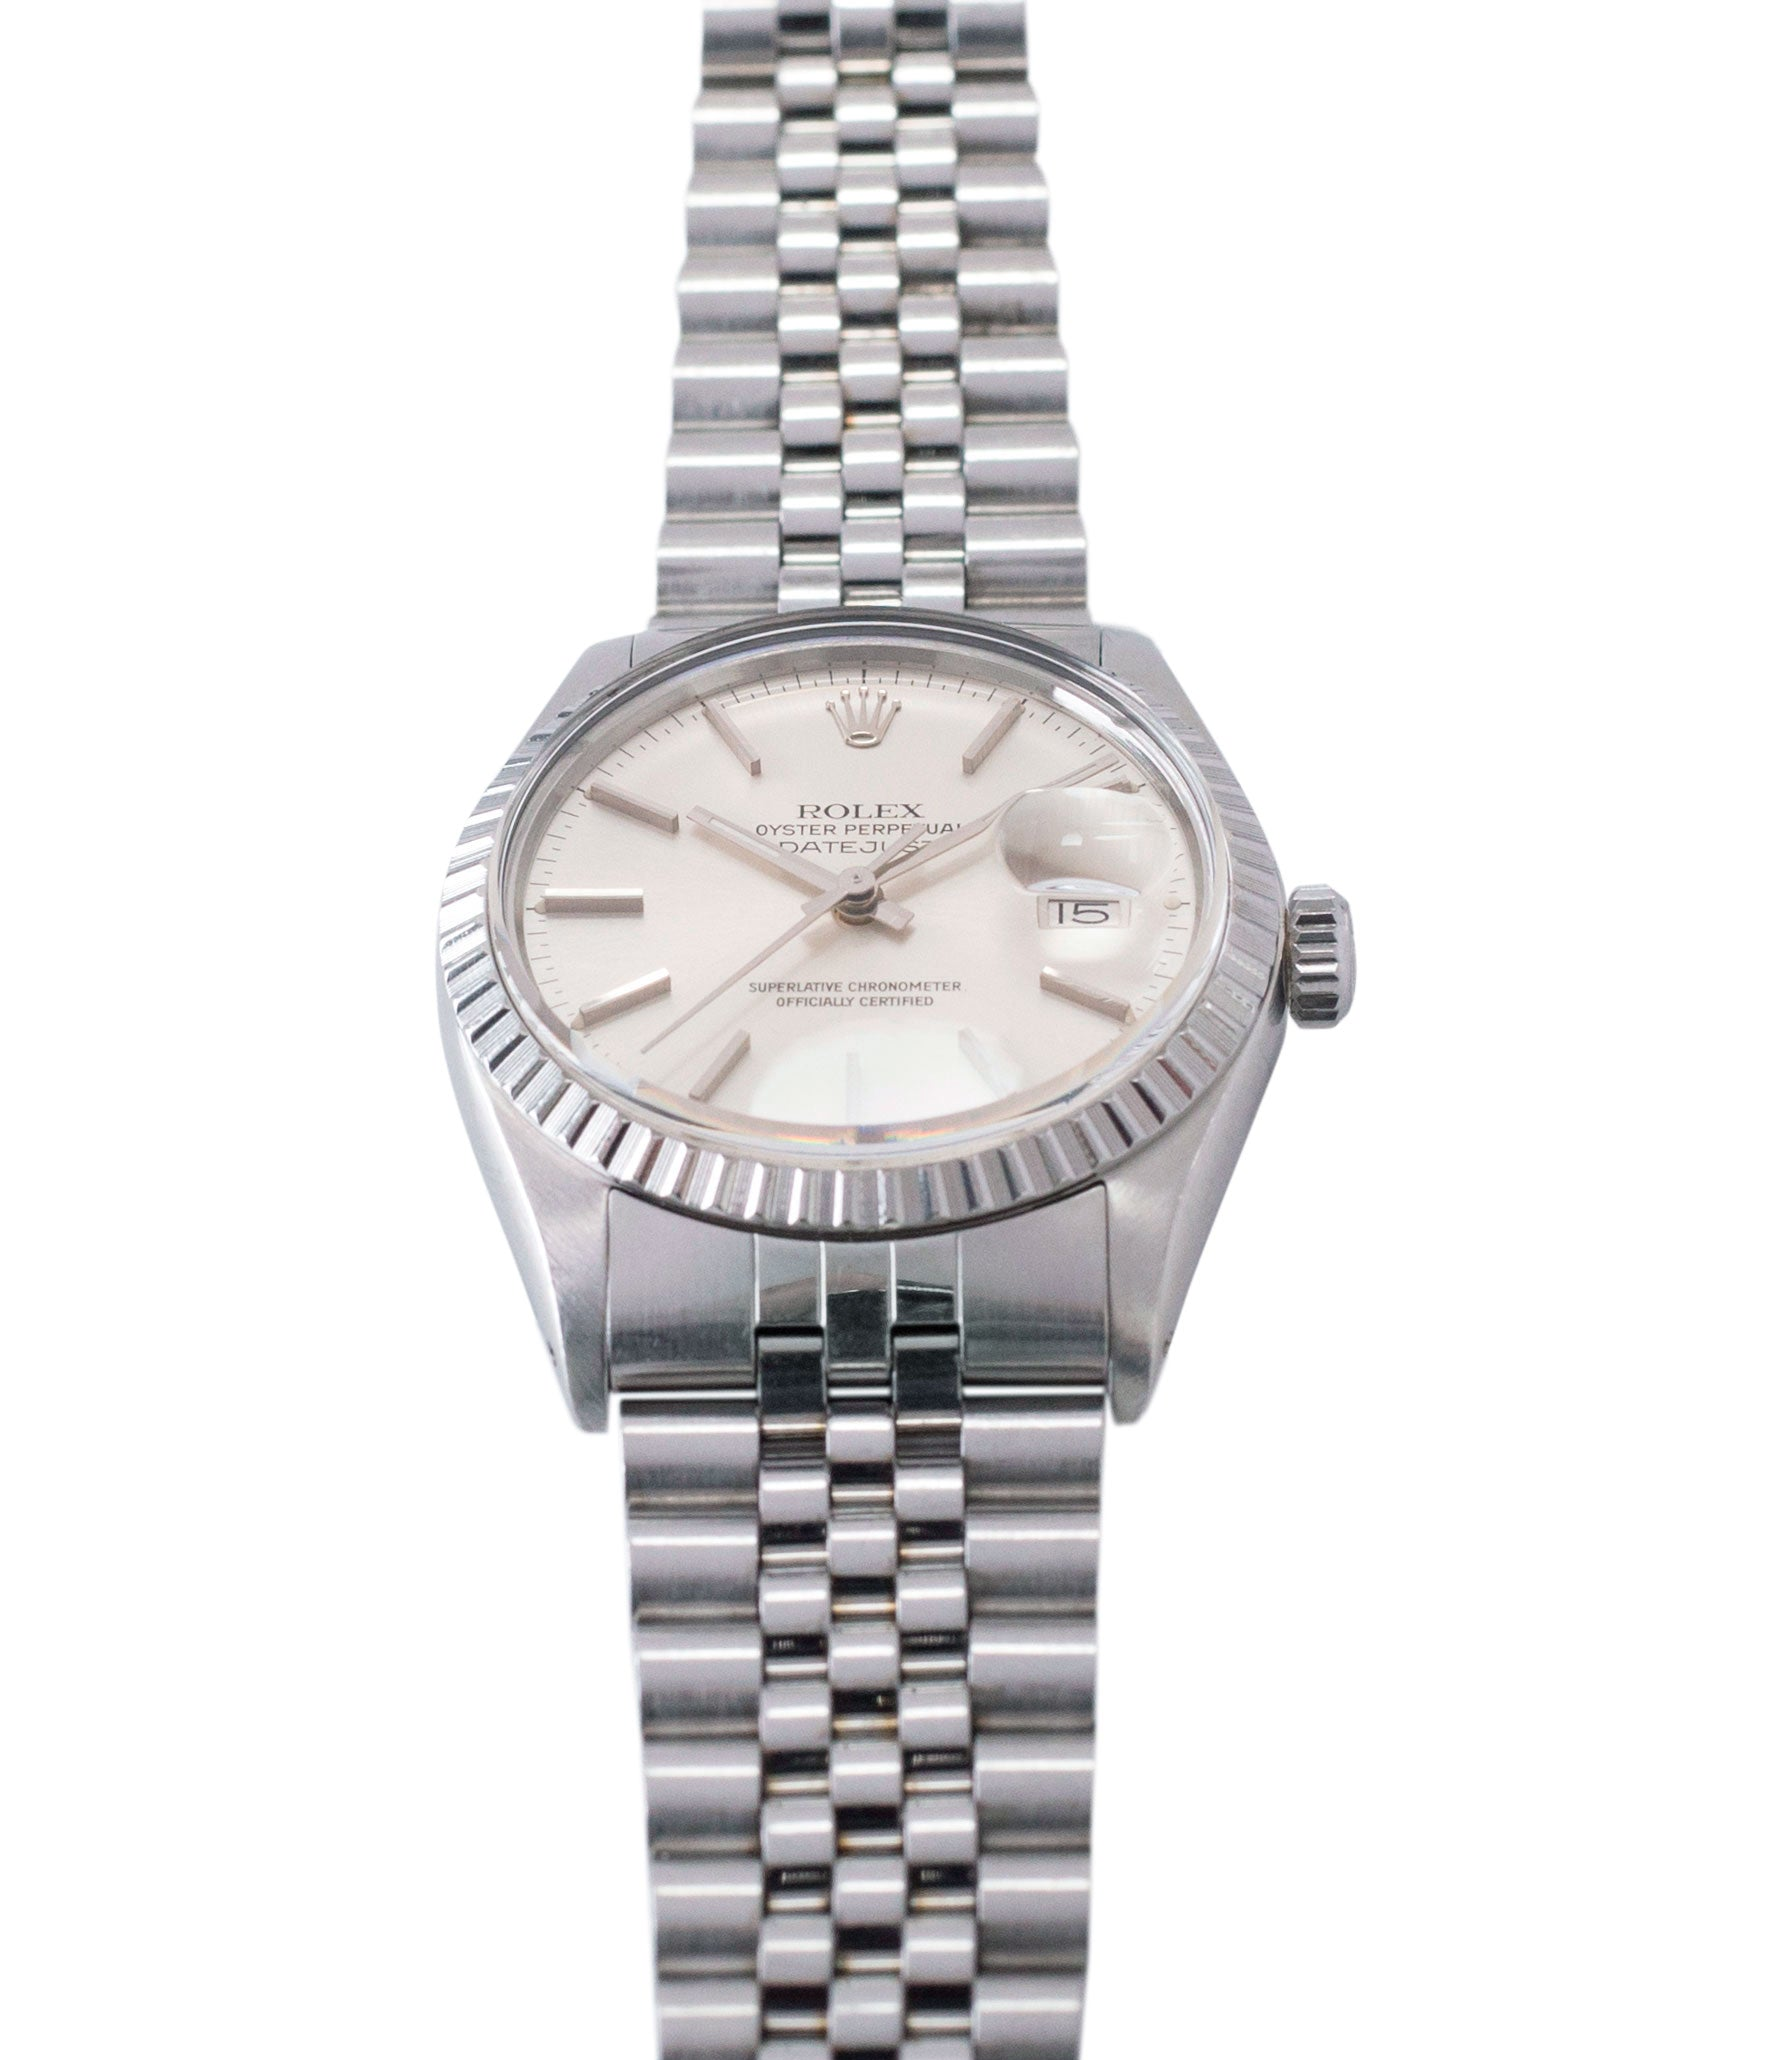 buy vintage full set Rolex Datejust 16030 steel automatic silver dial watch Jubilee bracelet for sale online at A Collected Man London UK vintage watch specialist